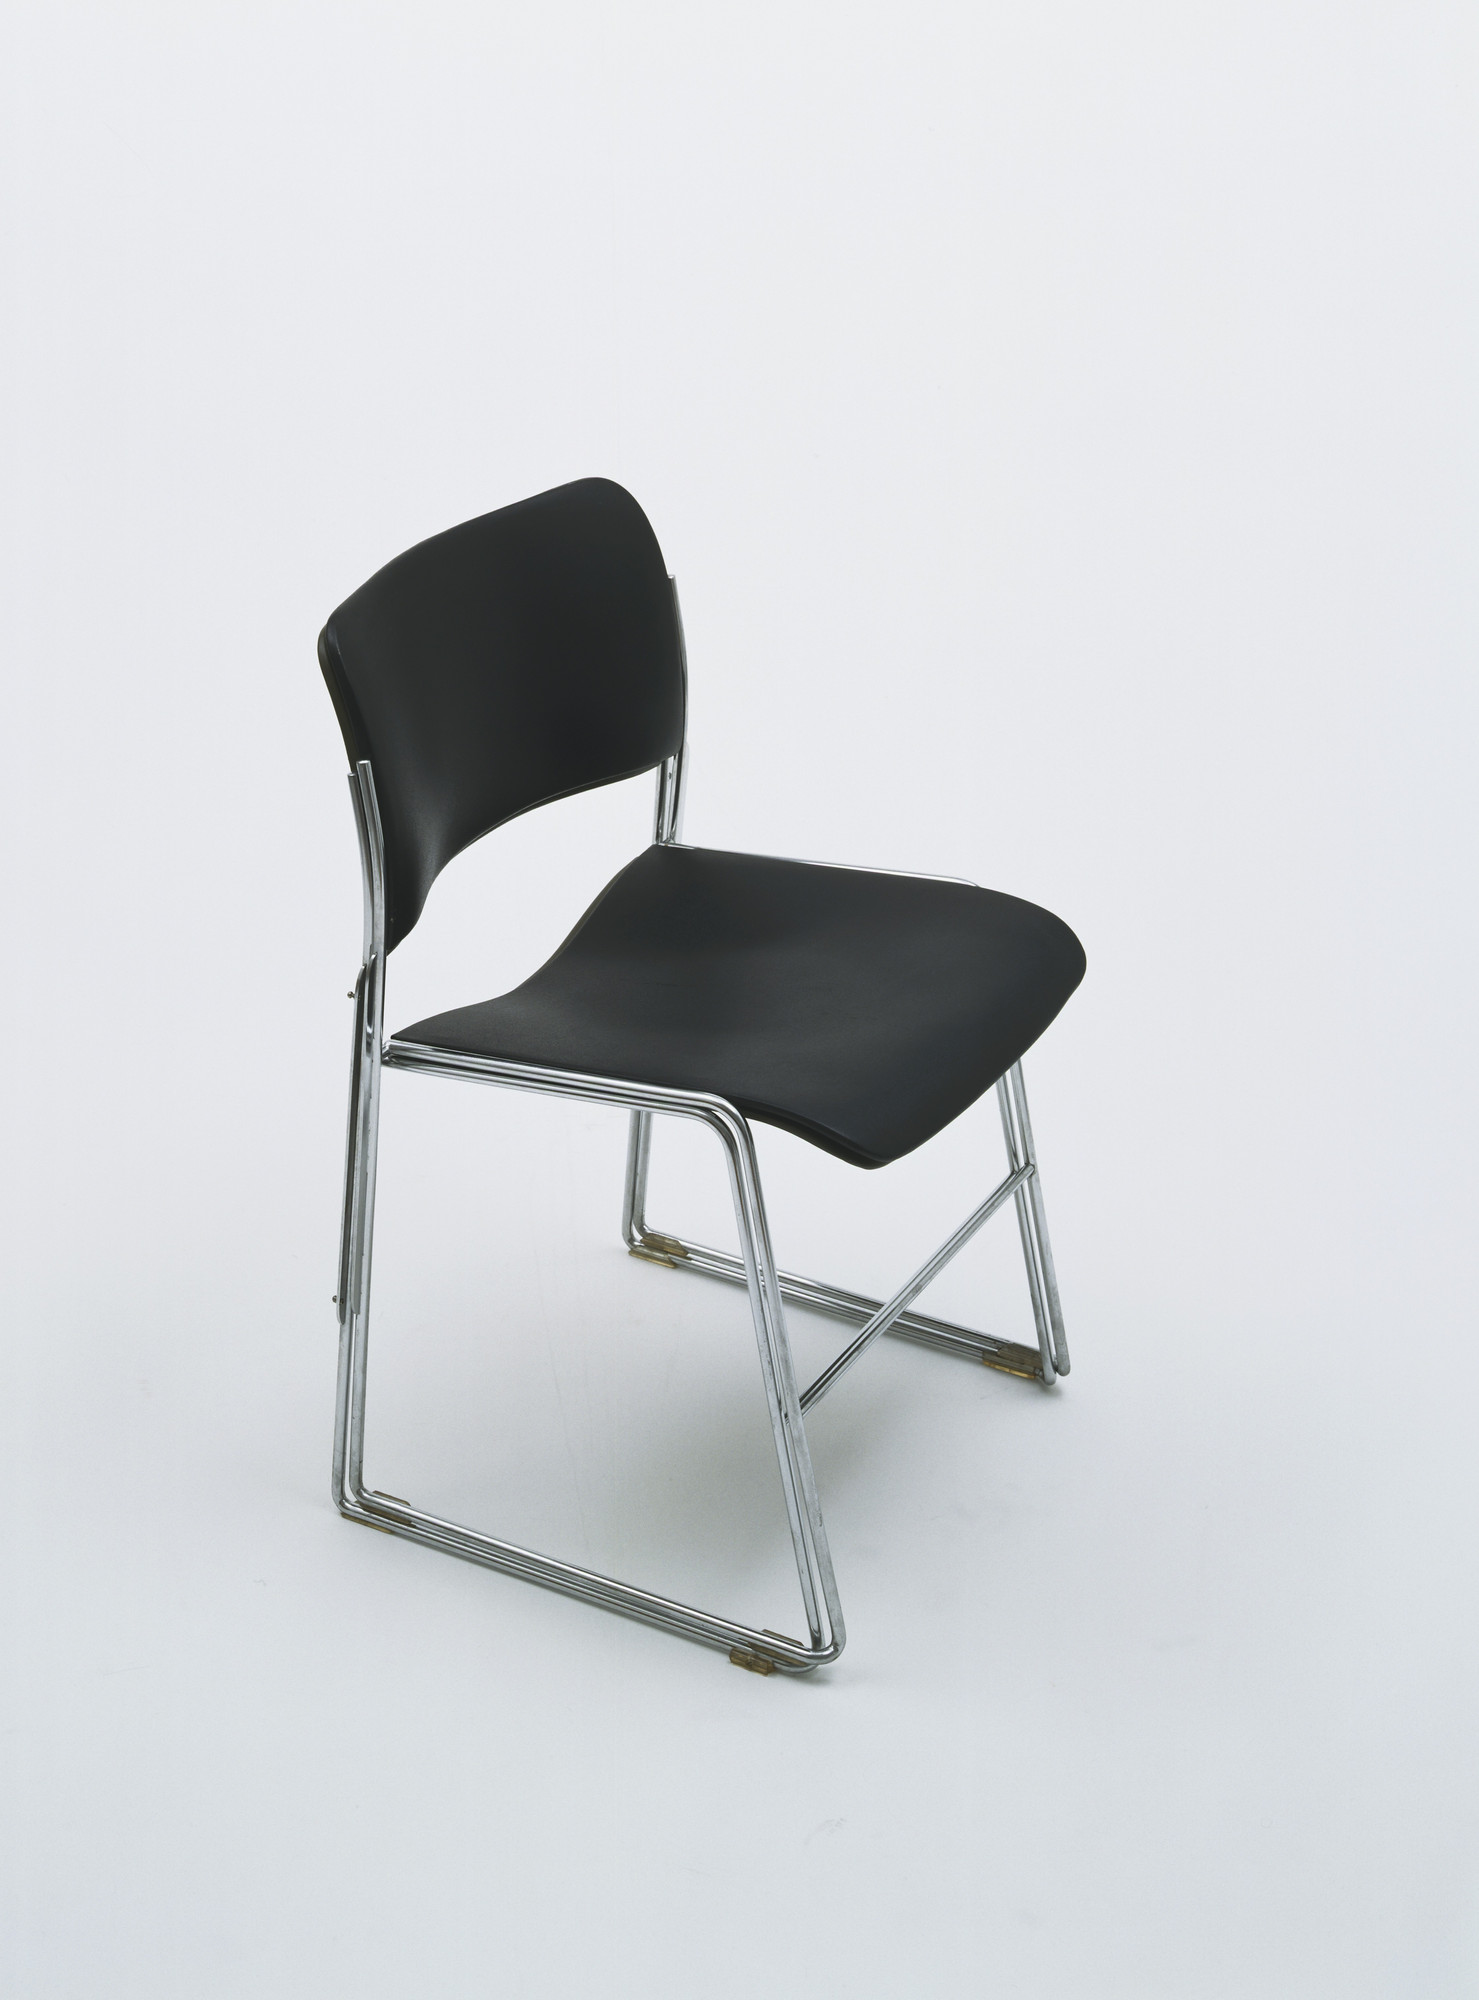 David Rowland. 40/4 Stacking Chair. 1964